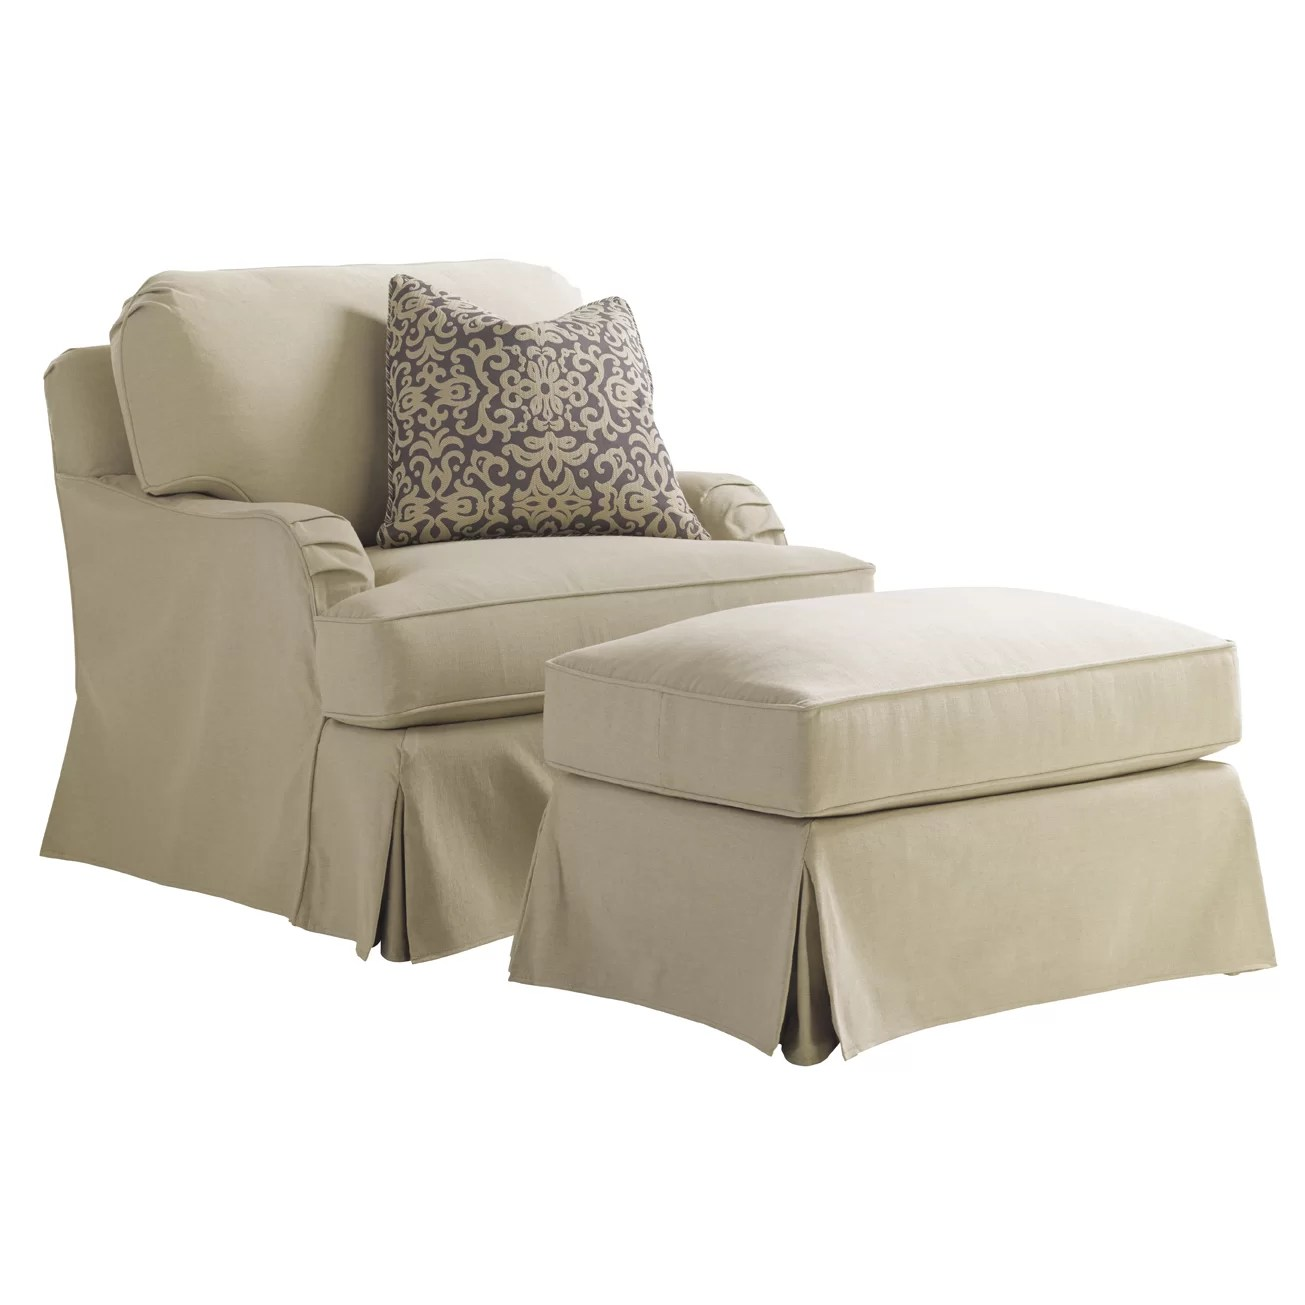 Slipcover For Oversized Chair And Ottoman Coventry Hills Stowe Slipcover Arm Chair And Ottoman Wayfair